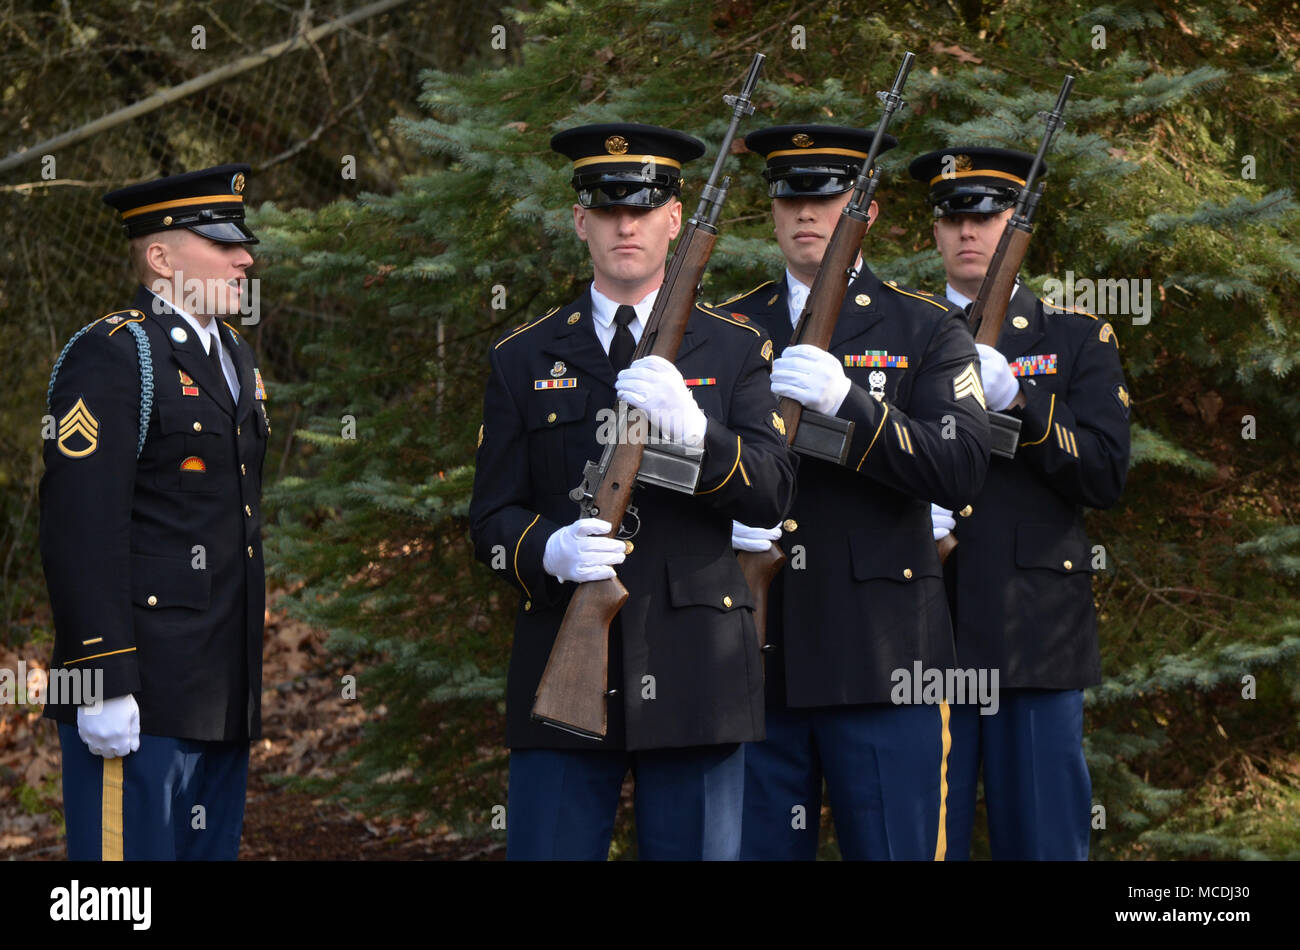 A firing party team of Oregon Army National Guard Soldiers consisting of SPC Michael Banks, SGT Everett Mayers and SPC Isaac Yocum (left to right), listen to commands given by SSGT Joshua Flores (far left) while supporting a Navy funeral at Willamette National Cemetery, Portland, Ore., Feb. 7, 2018.  (U.S. Air National Guard photo by Master Sgt. John Hughel, 142nd Fighter Wing Public Affairs) - Stock Image